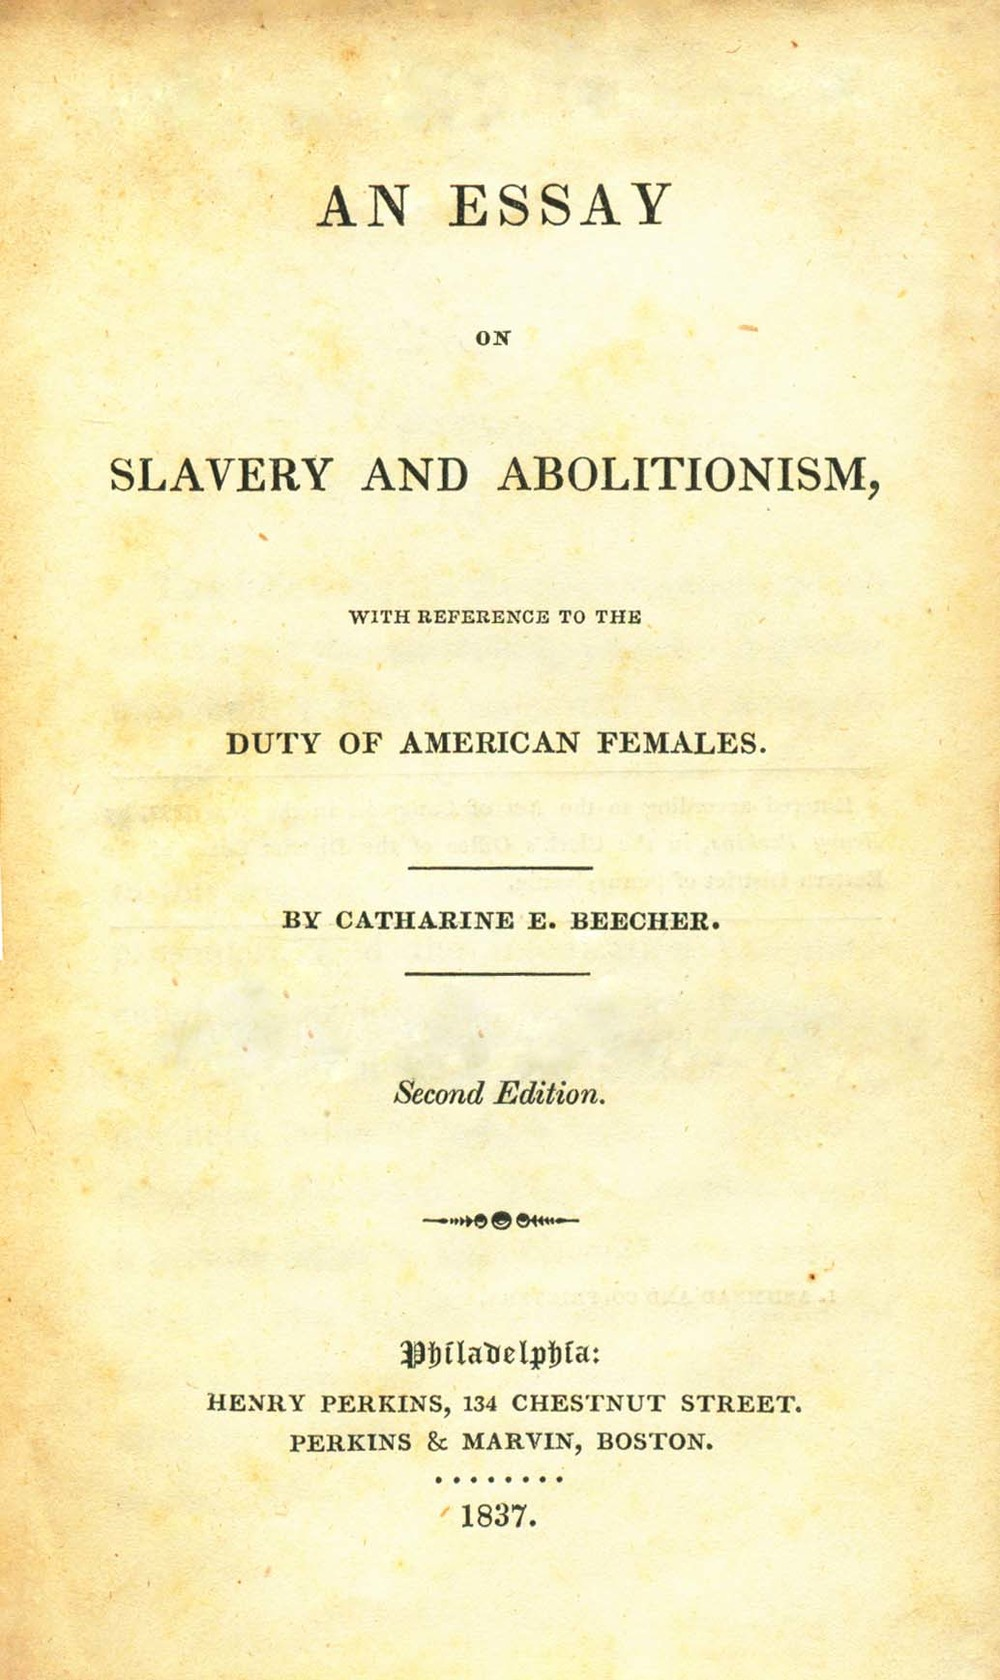 Do My Own Business Plan Catharine Beecher Essay On Slavery And Abolitionism  College Application Writers 8th Edition Online also High School Reflective Essay Abolitionist Movement  History Of Us Womans Suffrage Online Custom Writing Service